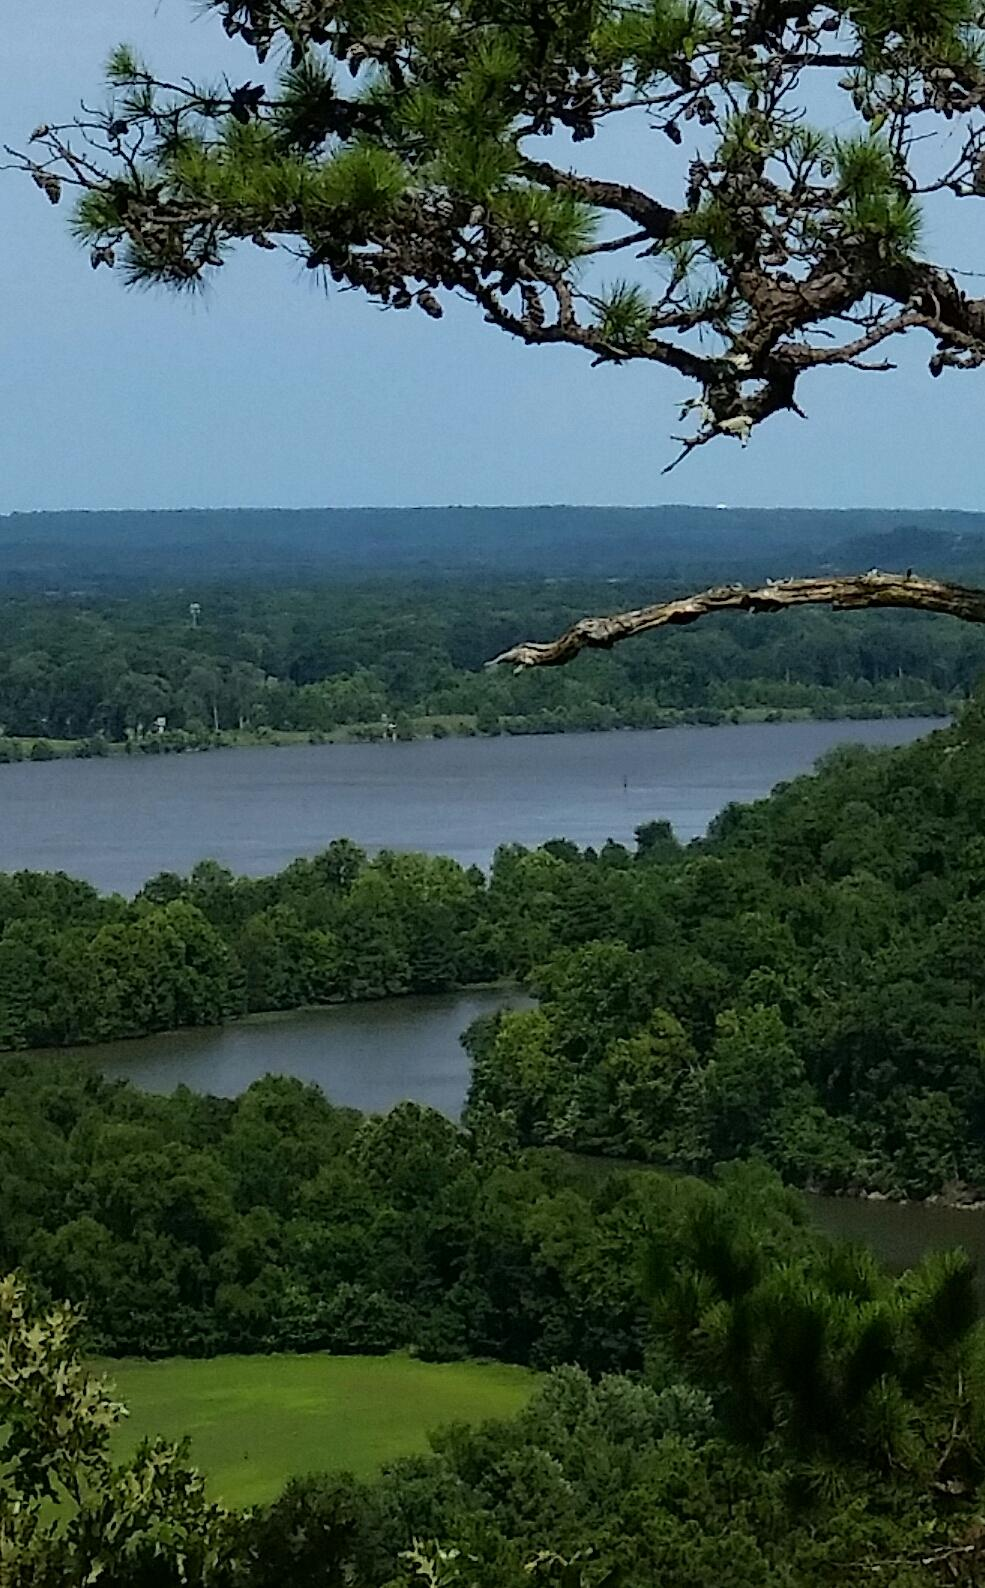 Arkansas River before the 2019 flood. Rivers flood the land but worry floods our minds